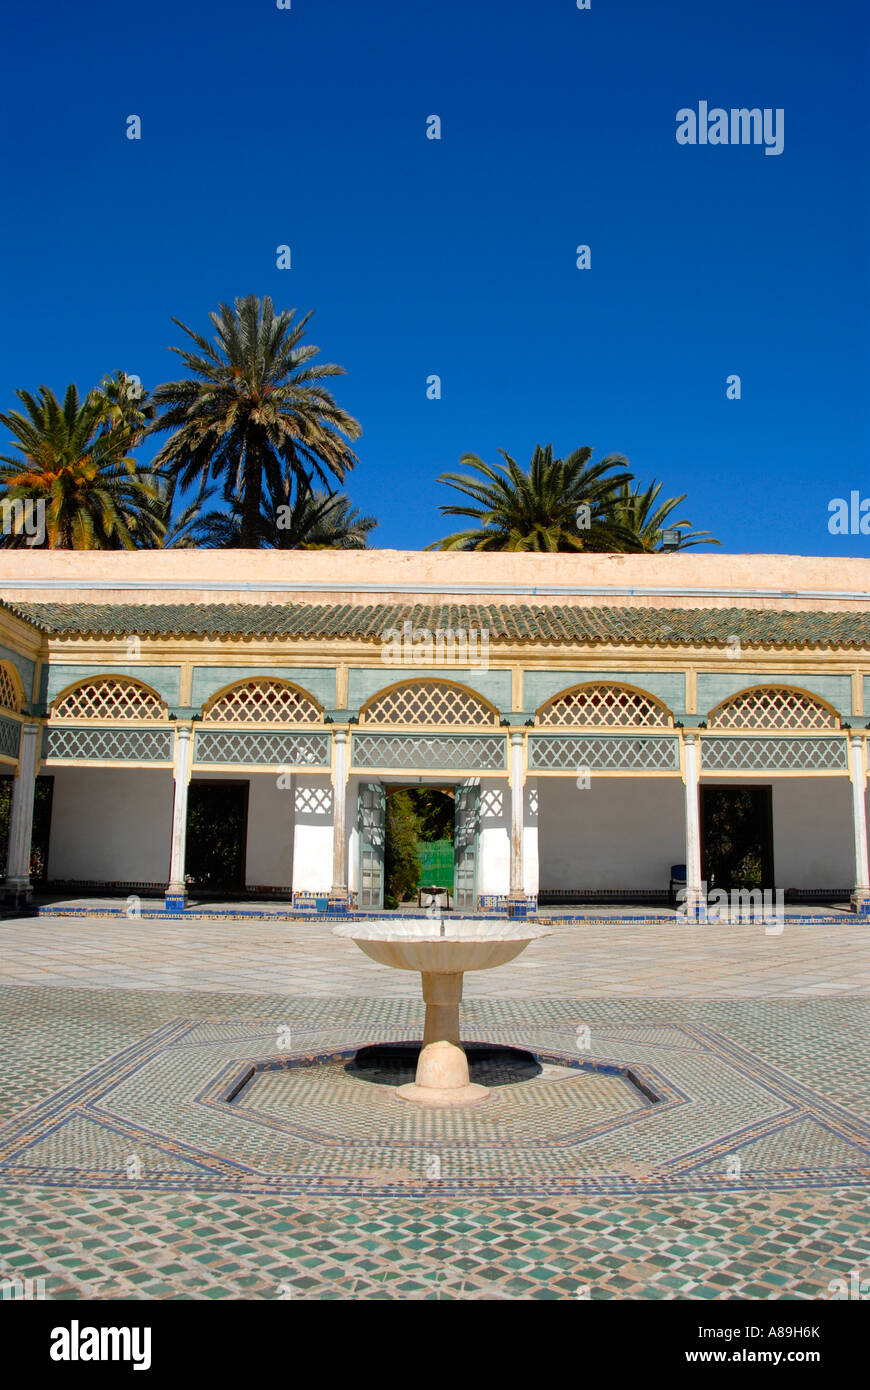 Yard with fountain Palais de la Bahia Marrakech Morocco - Stock Image